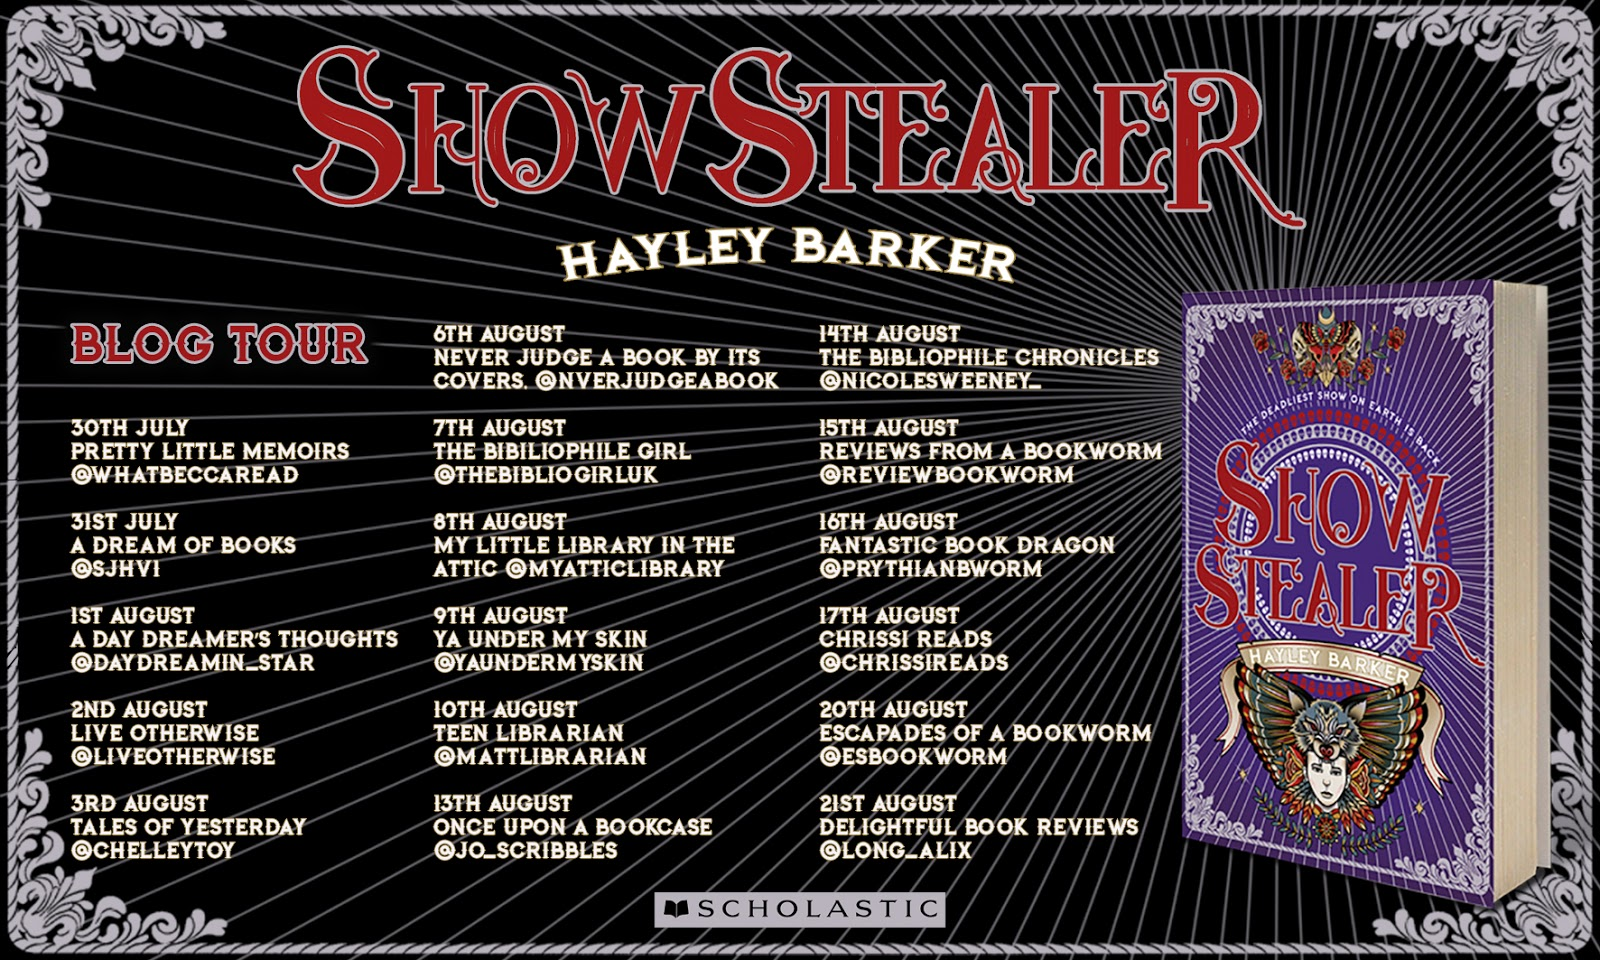 Show Stealer by Hayley Baker Blog Tour Banner